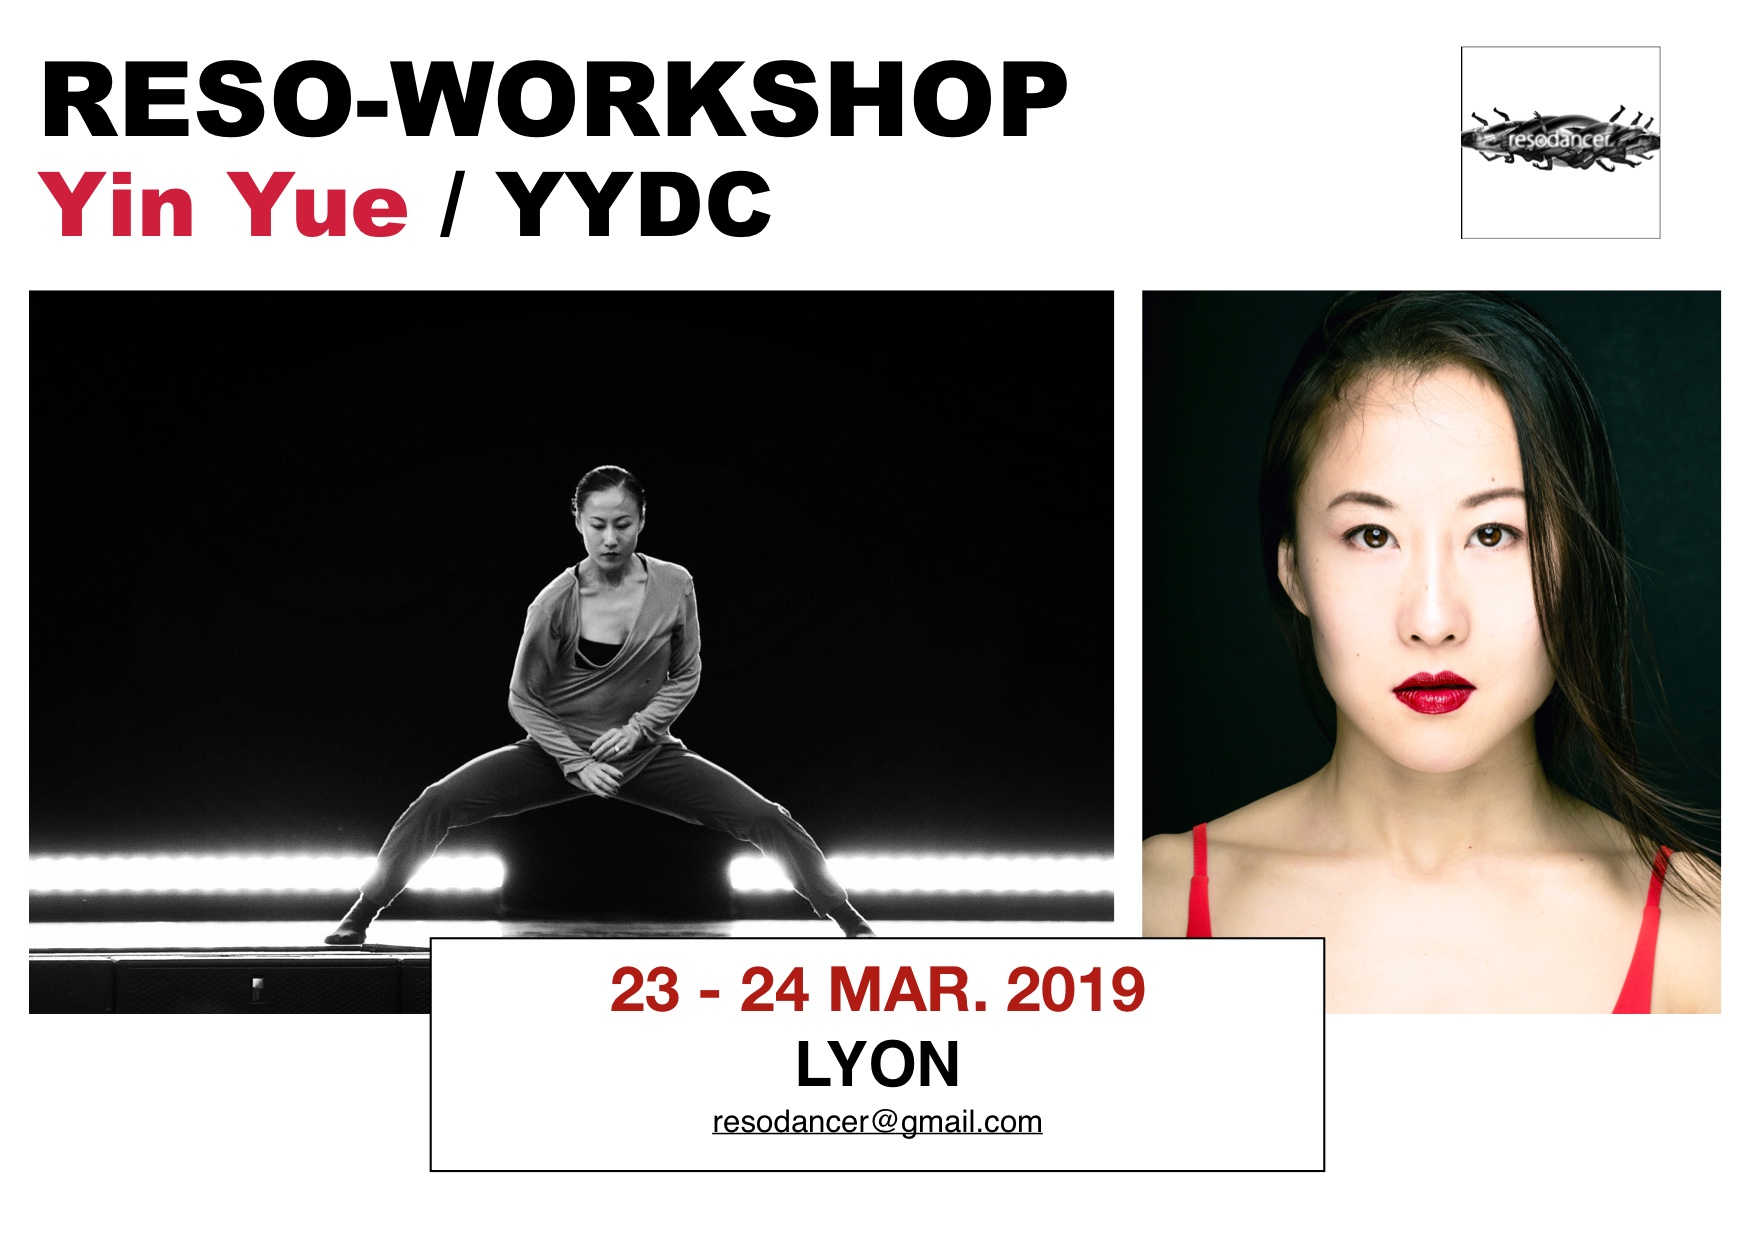 Reso-Workshop Yin Yue